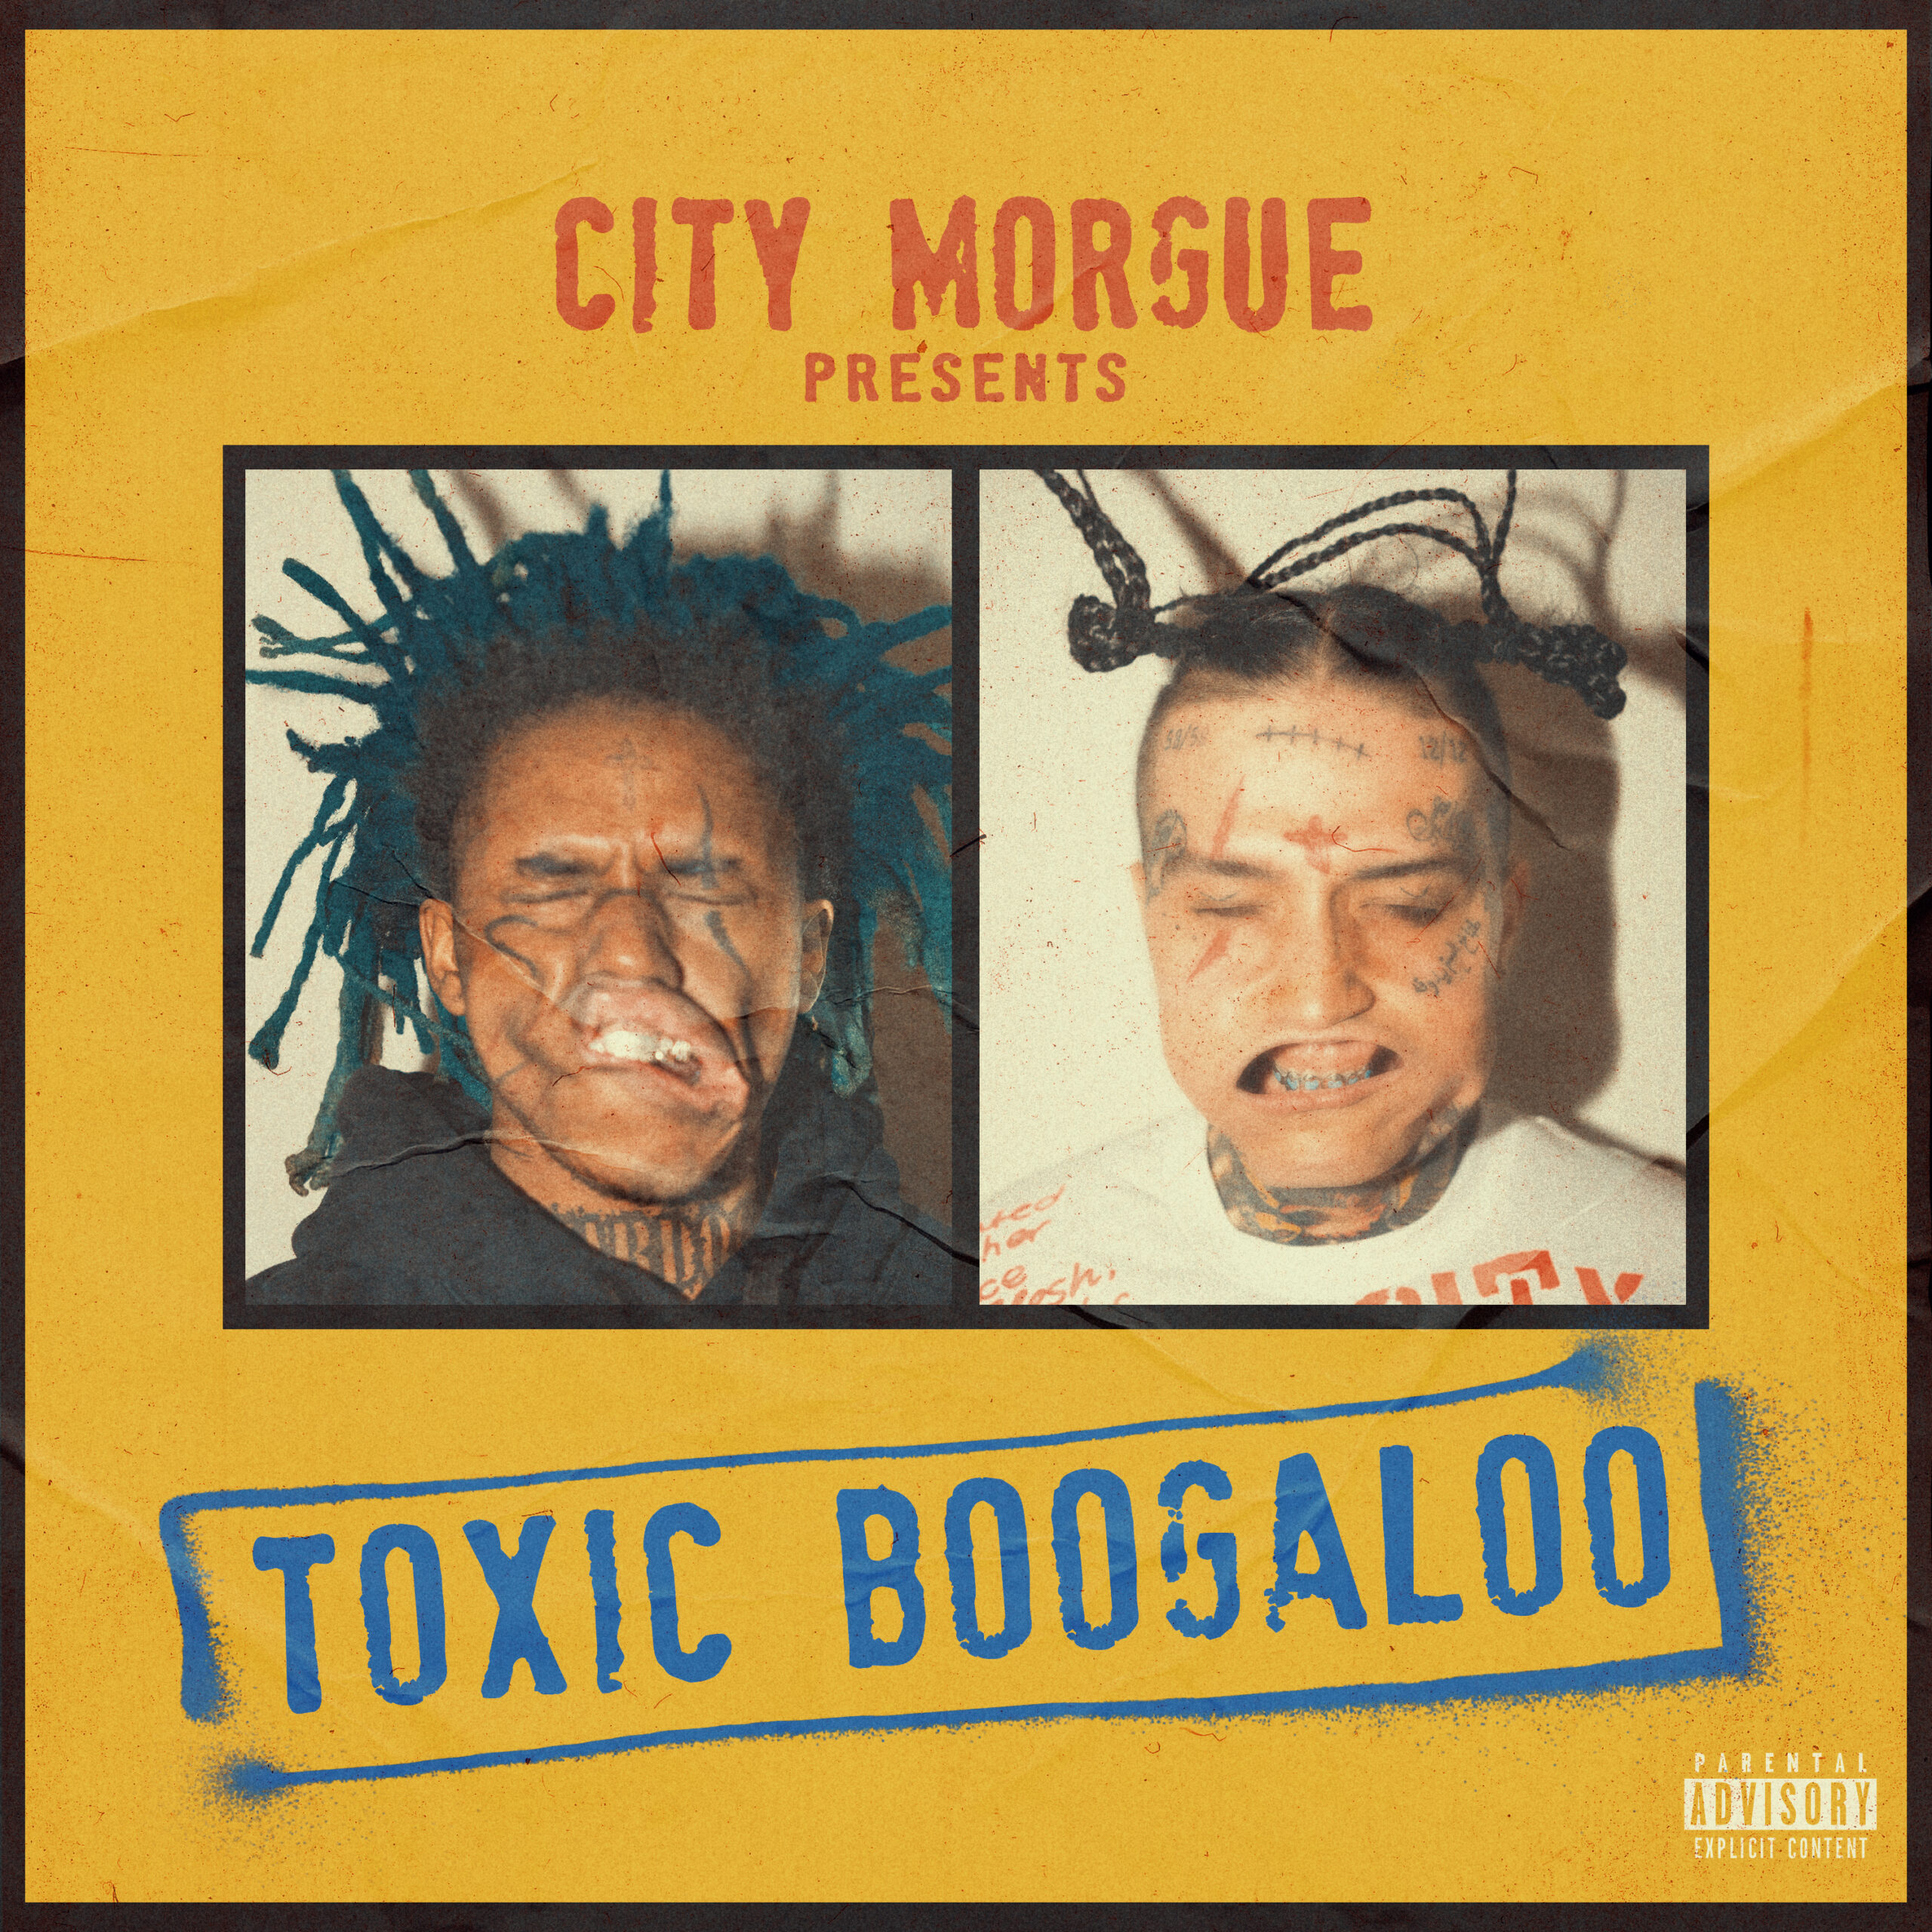 City Morgue Toxic Boogaloo